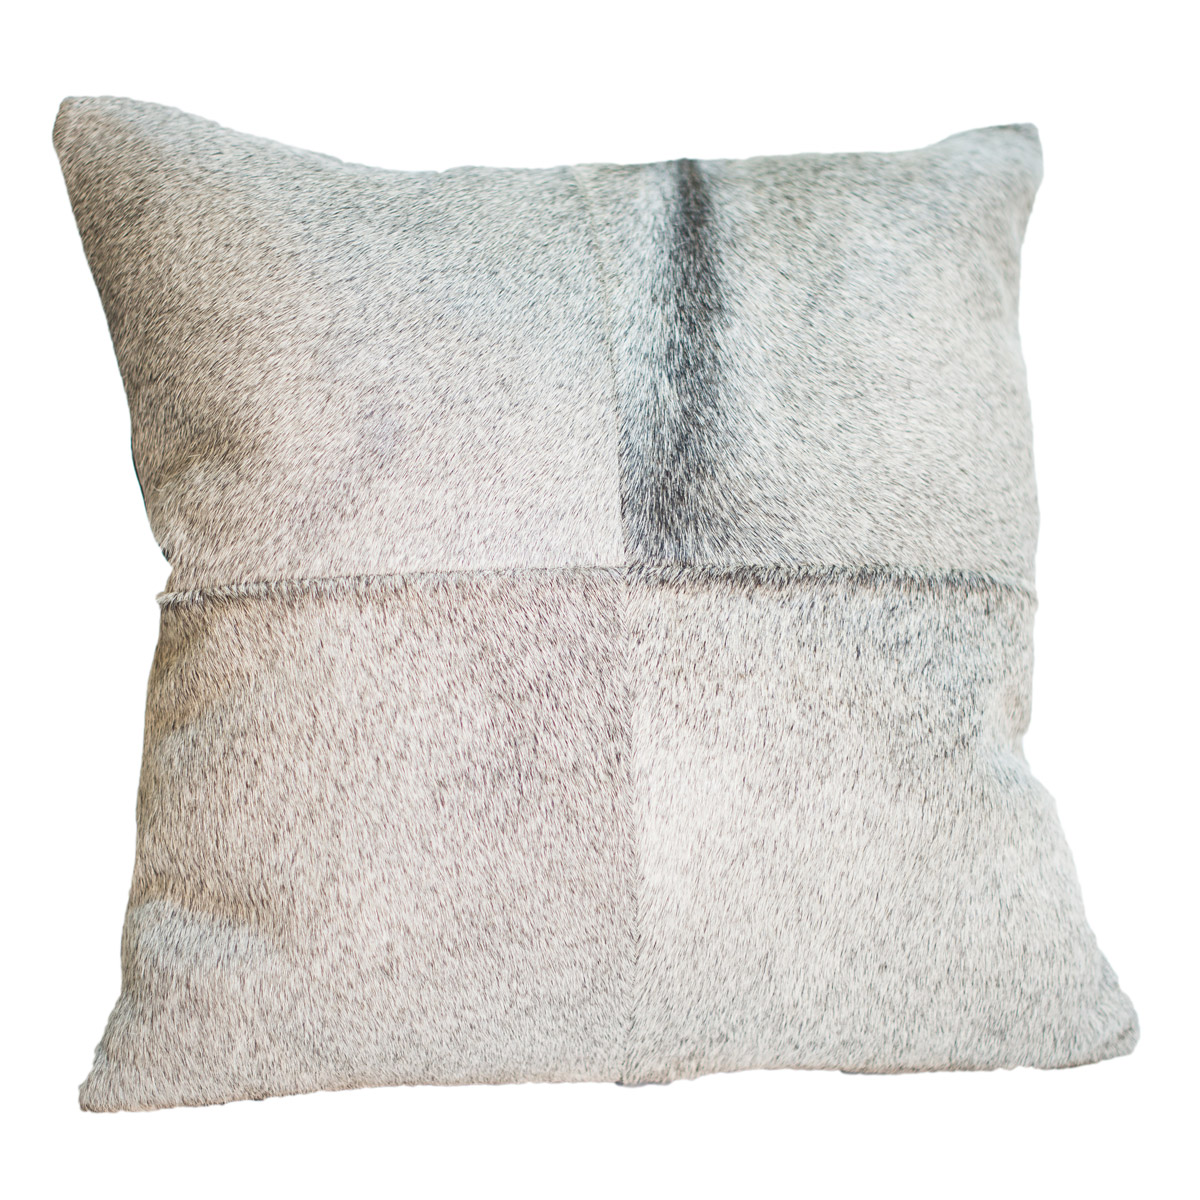 Gray Cowhide Pillow